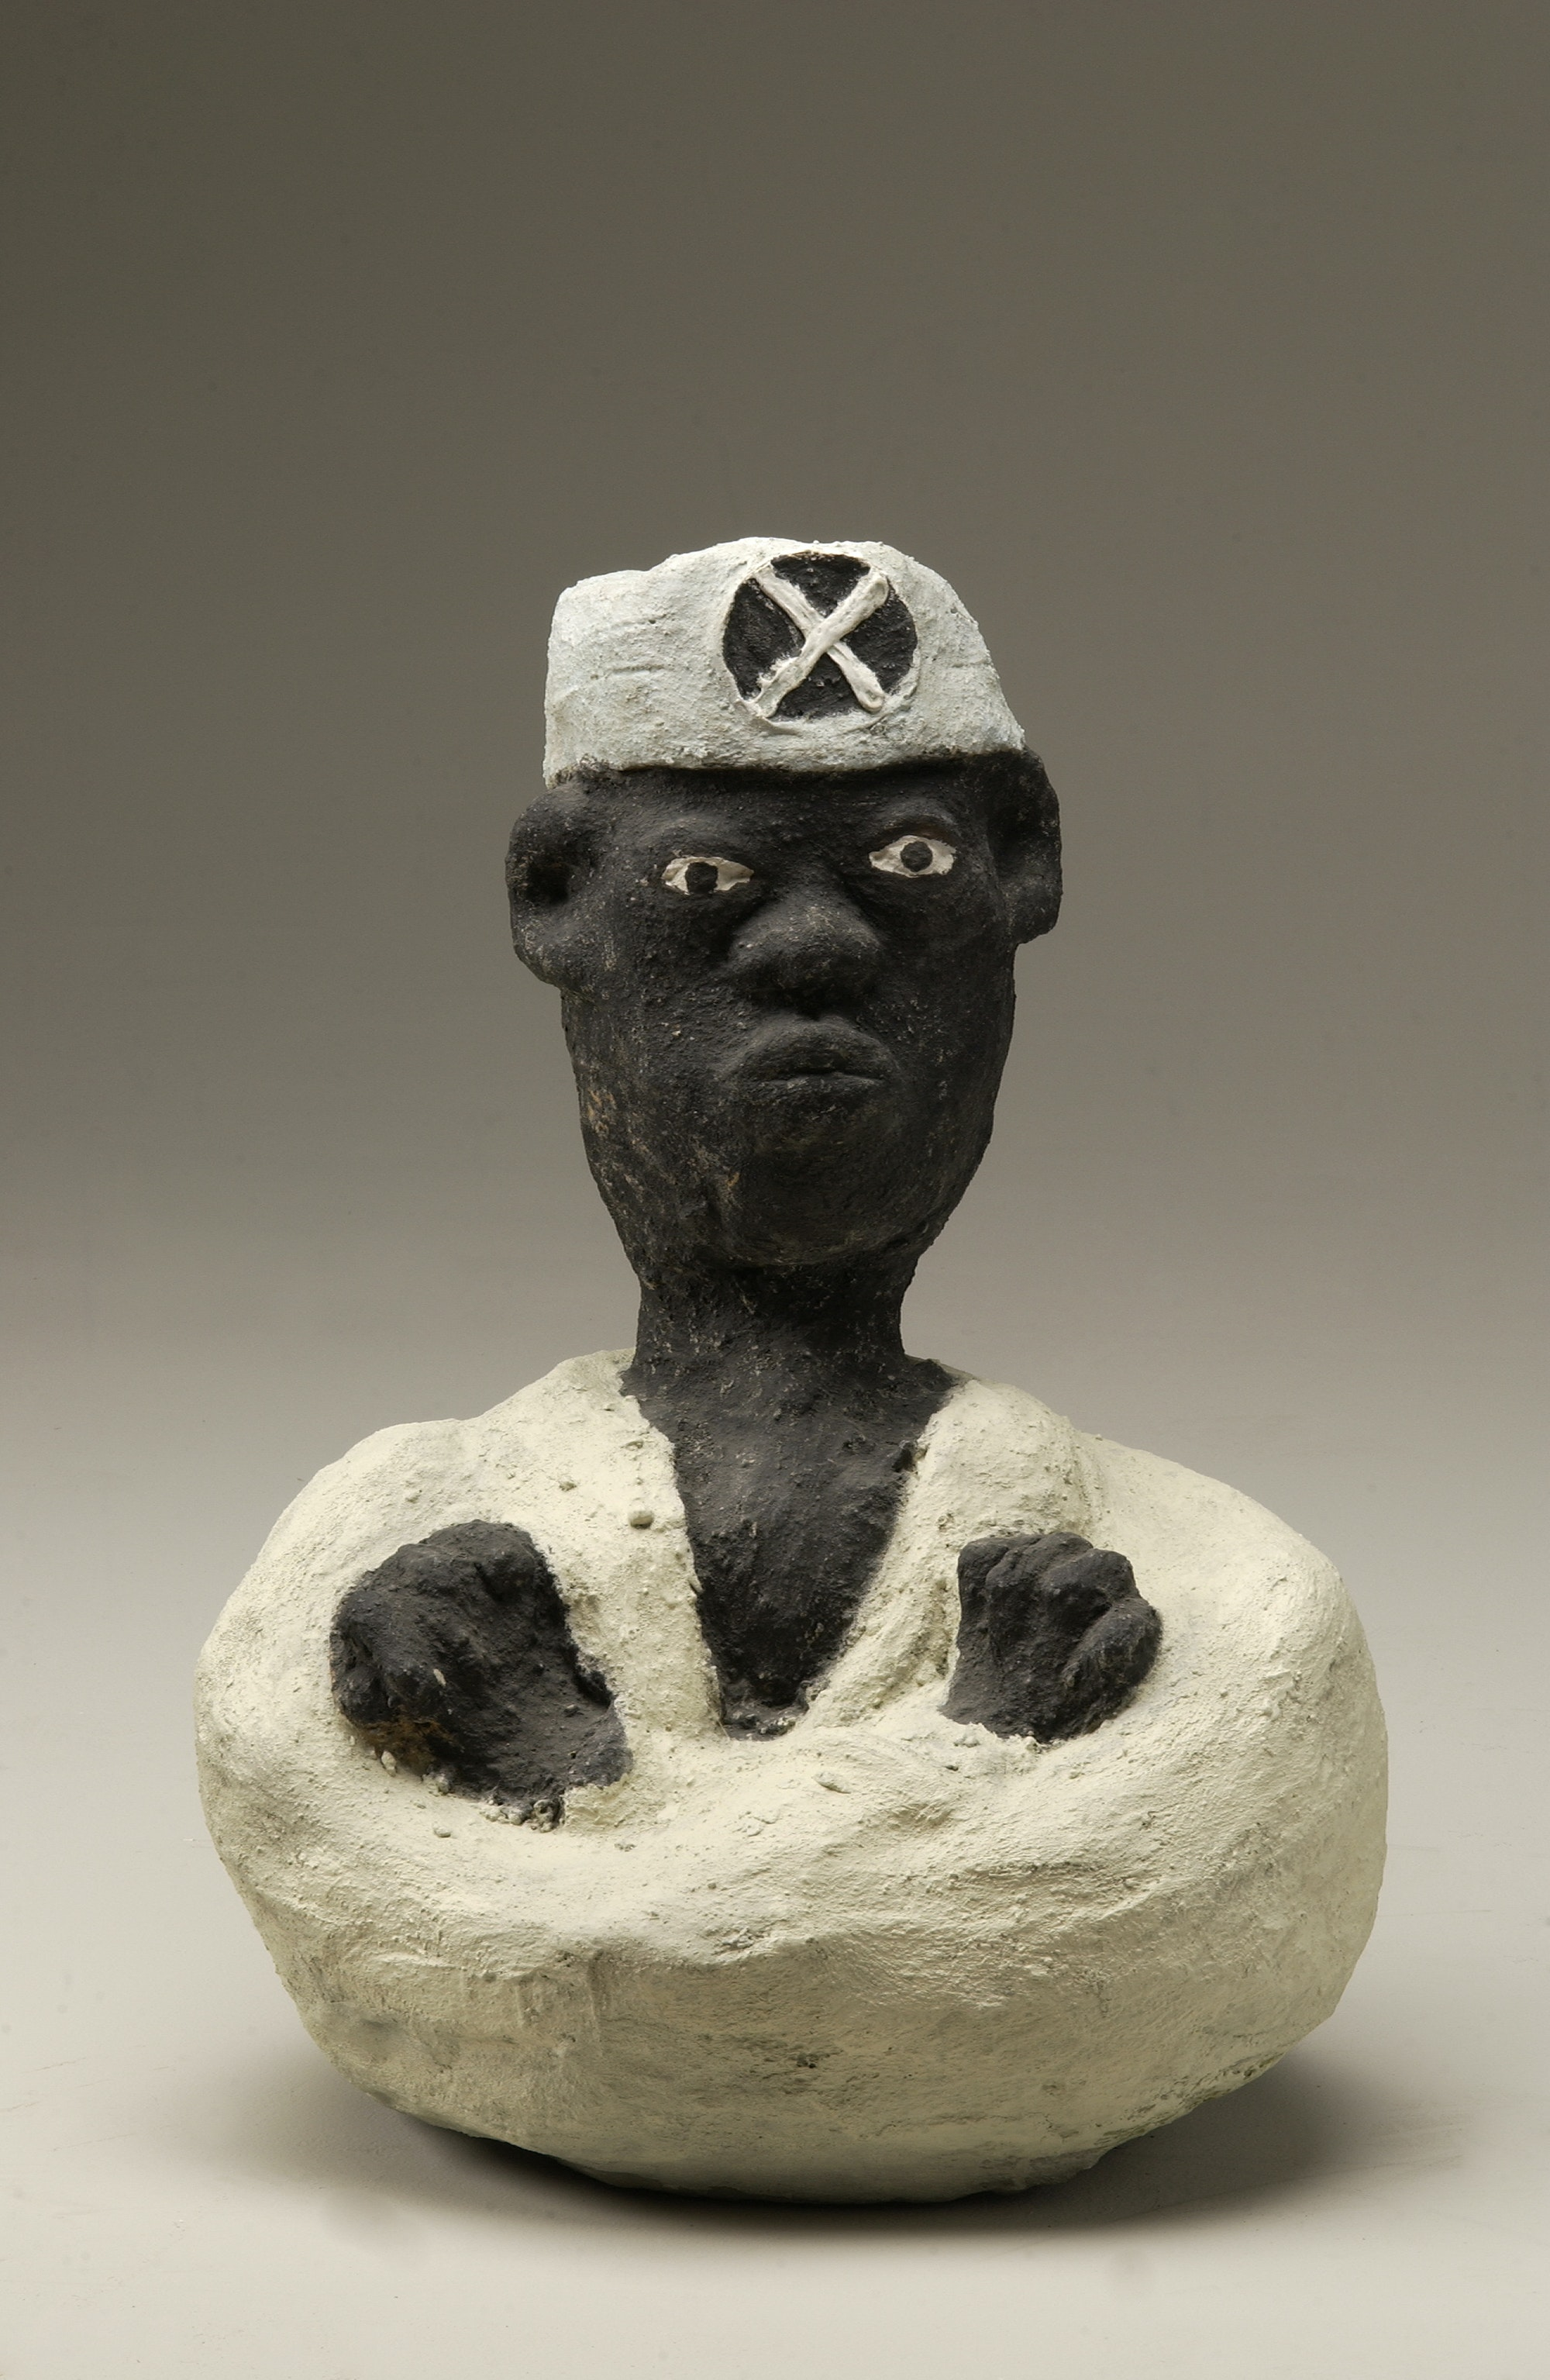 A Malcolm X sculpture by Dr. Charles Smith